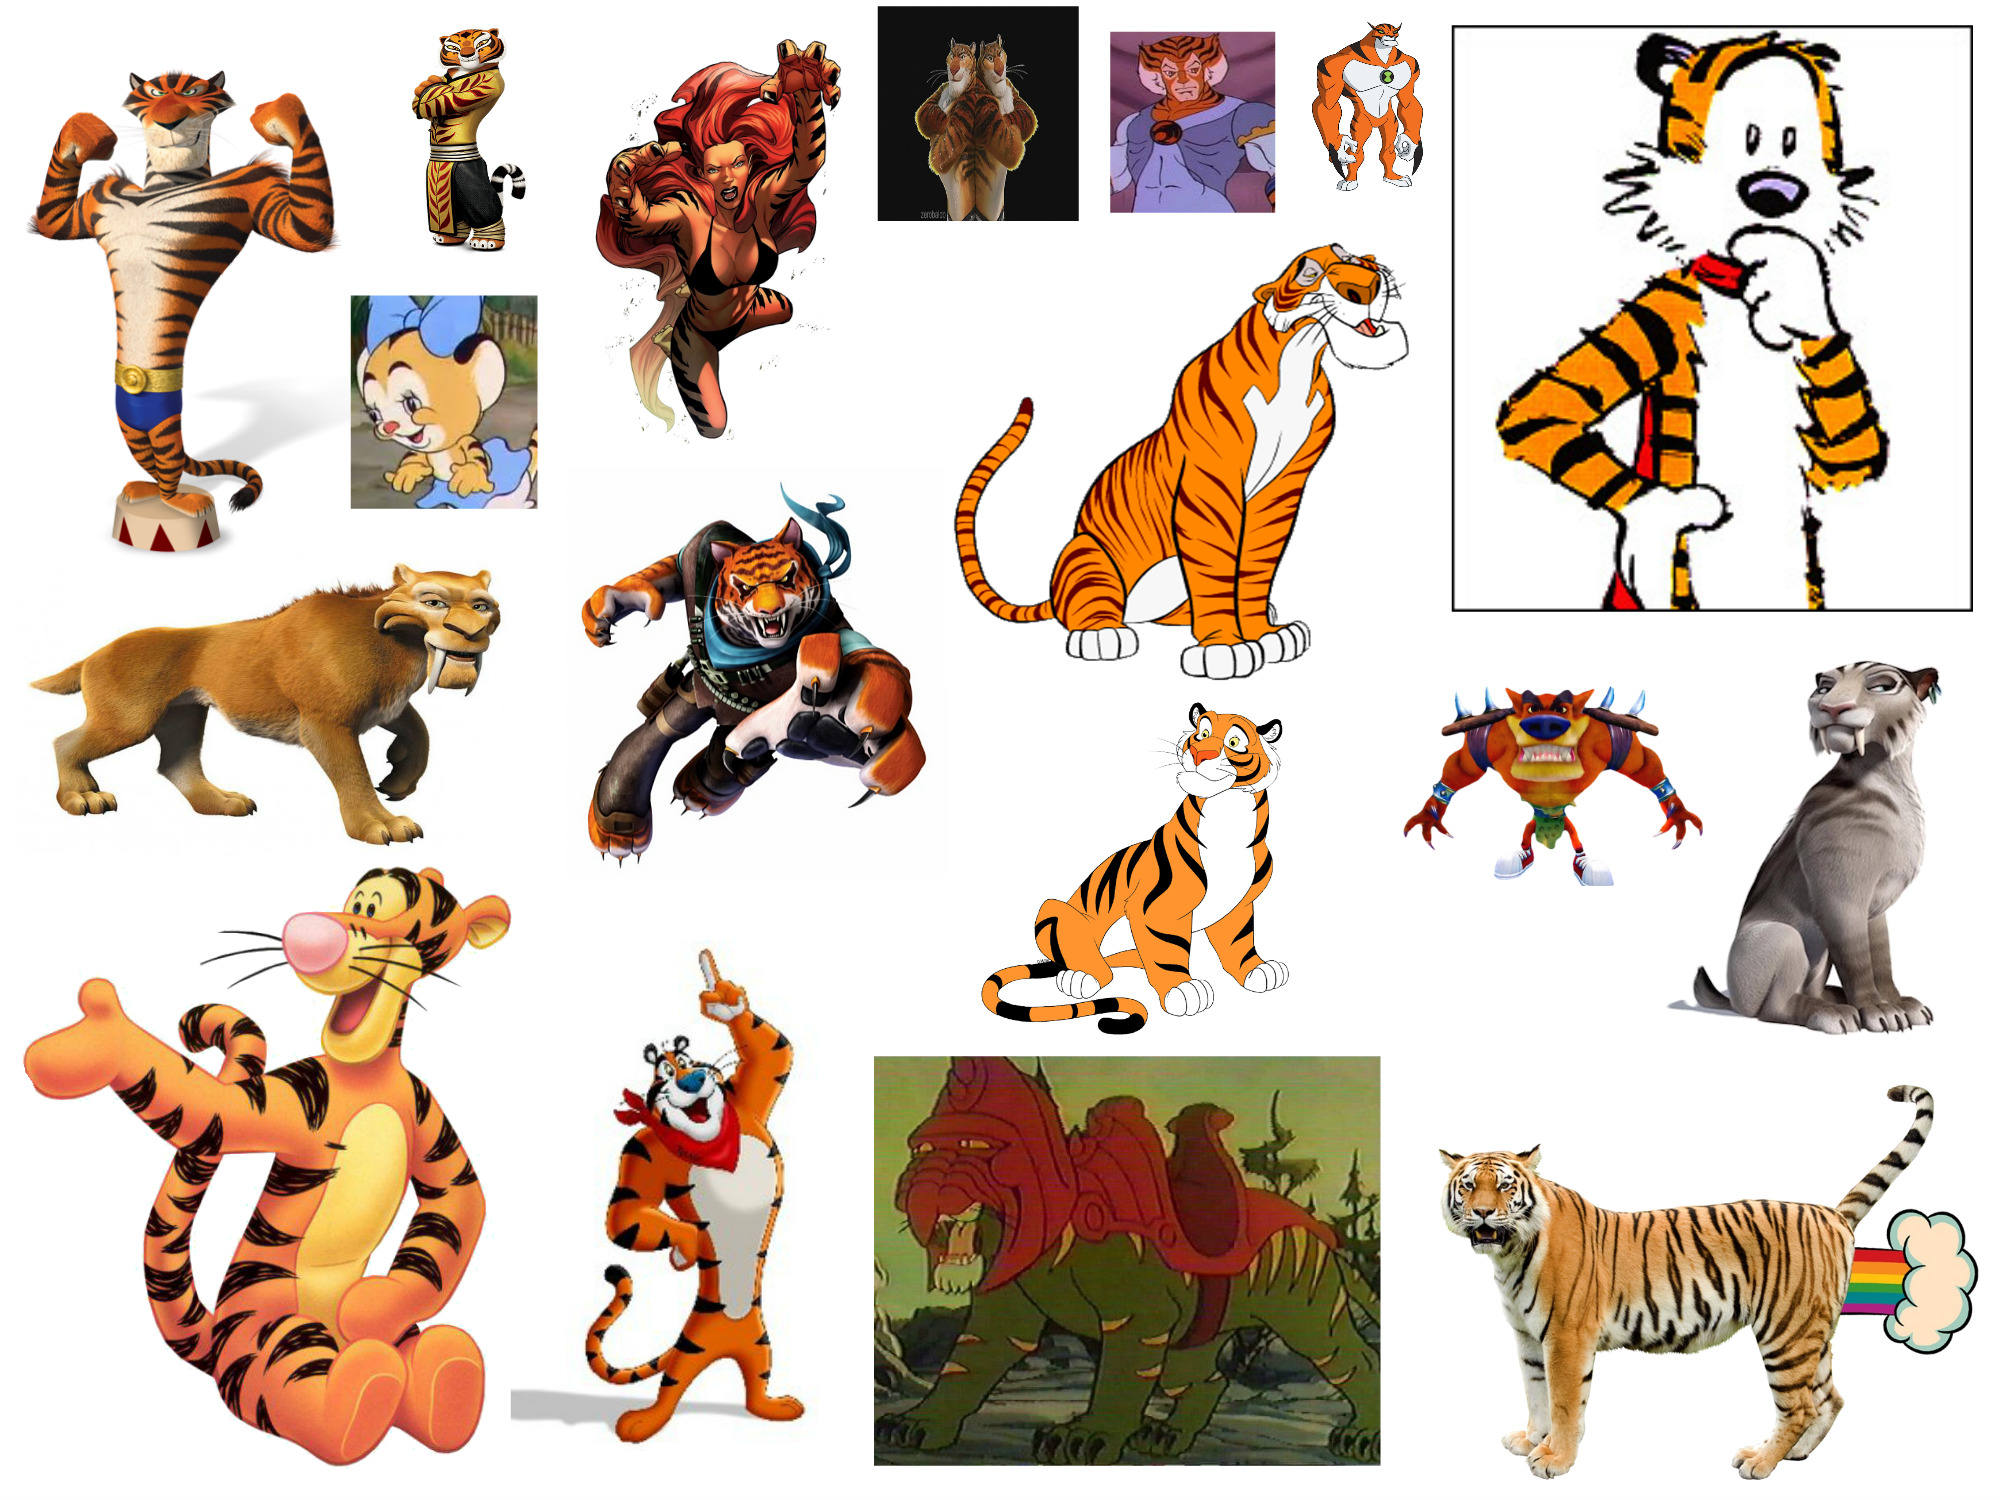 Animated Cartoon Tigers By Bart Toons On Deviantart